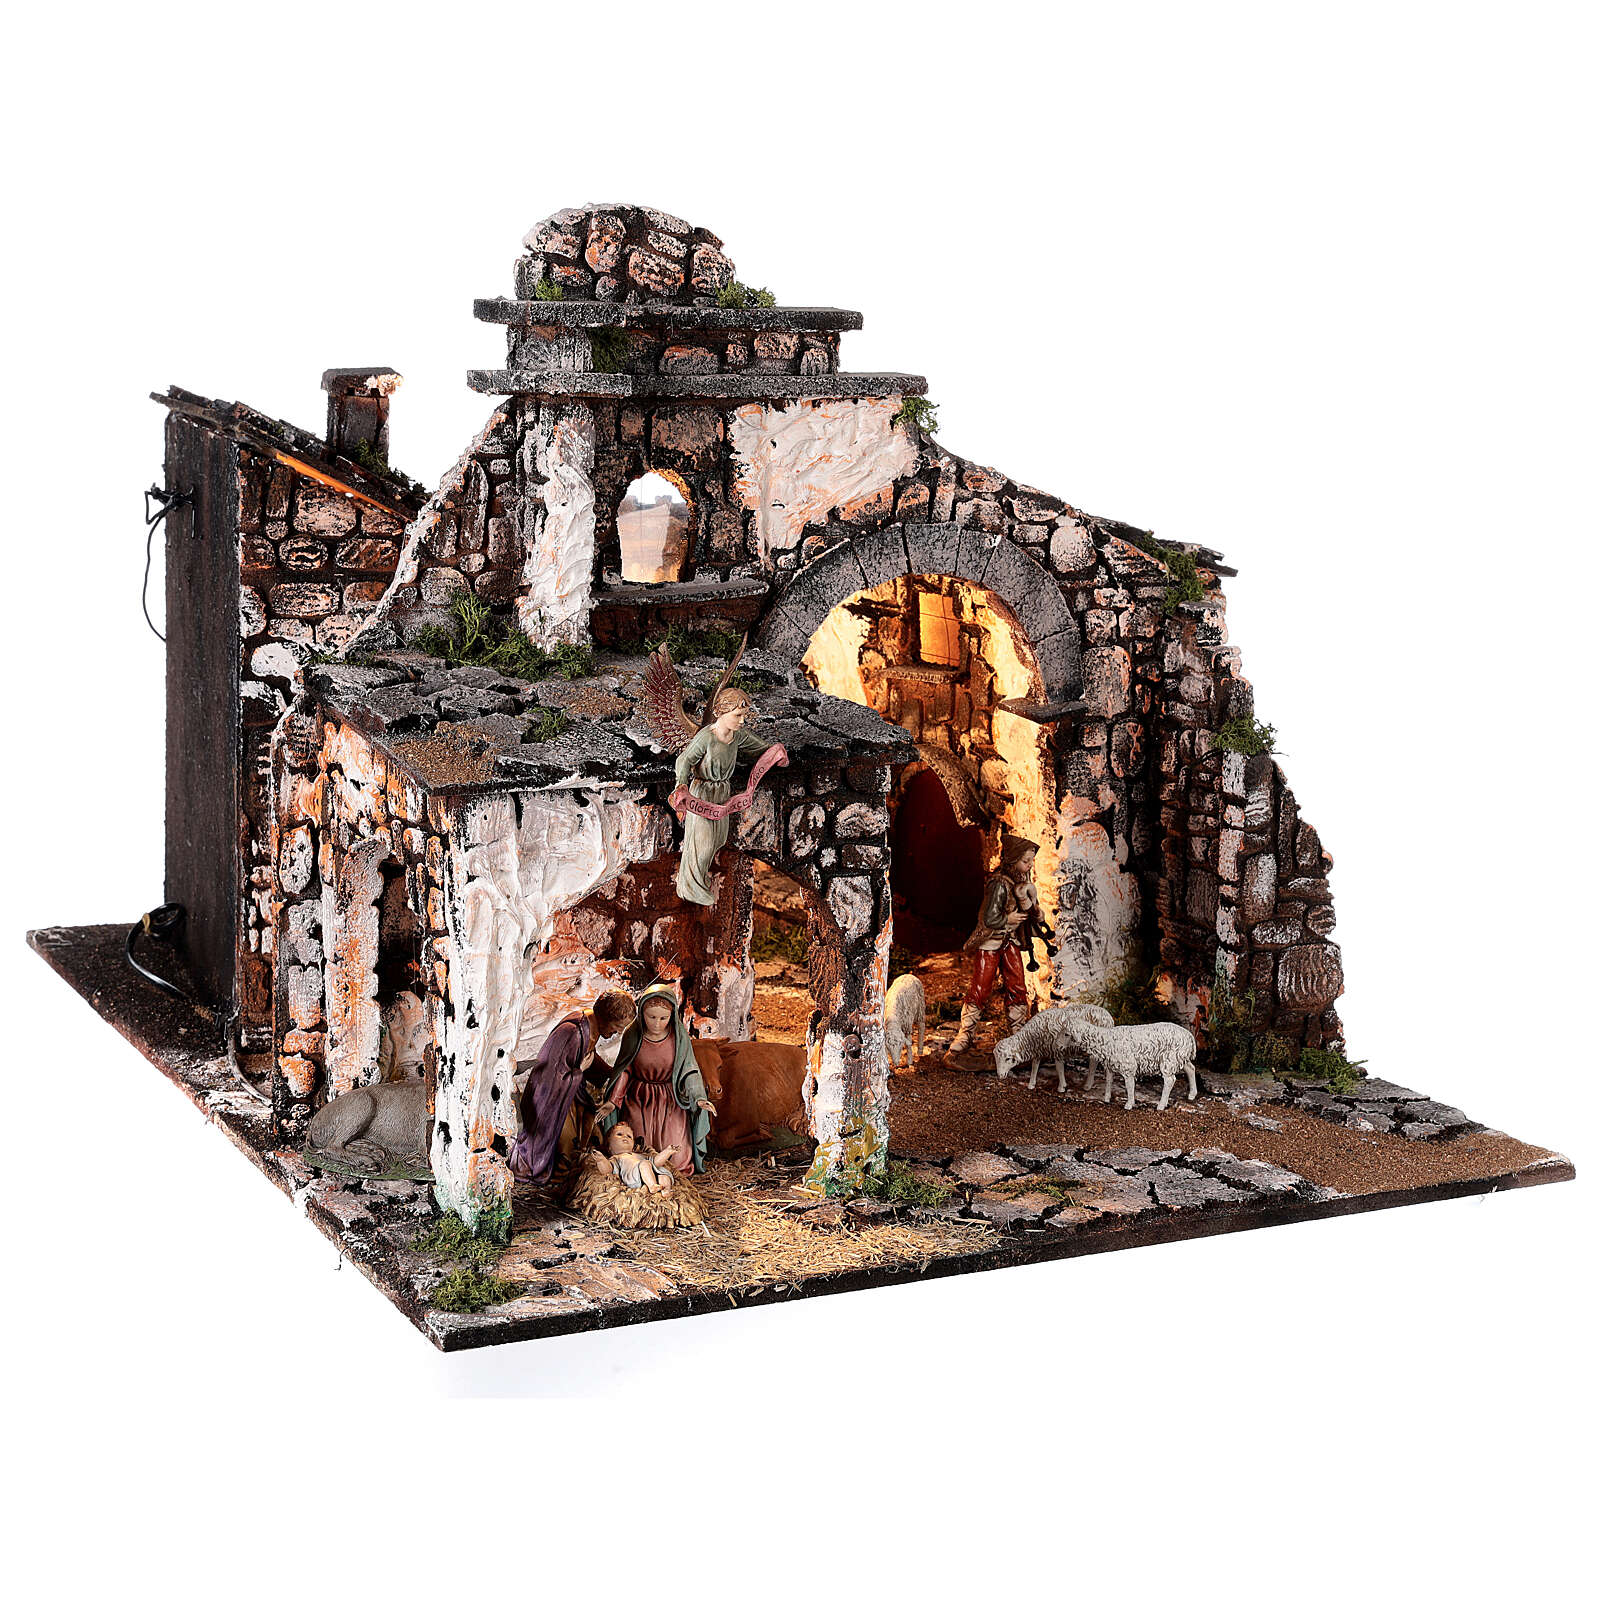 Village for Nativity scene in medieval style of dimensions 56x77x48 cm 4